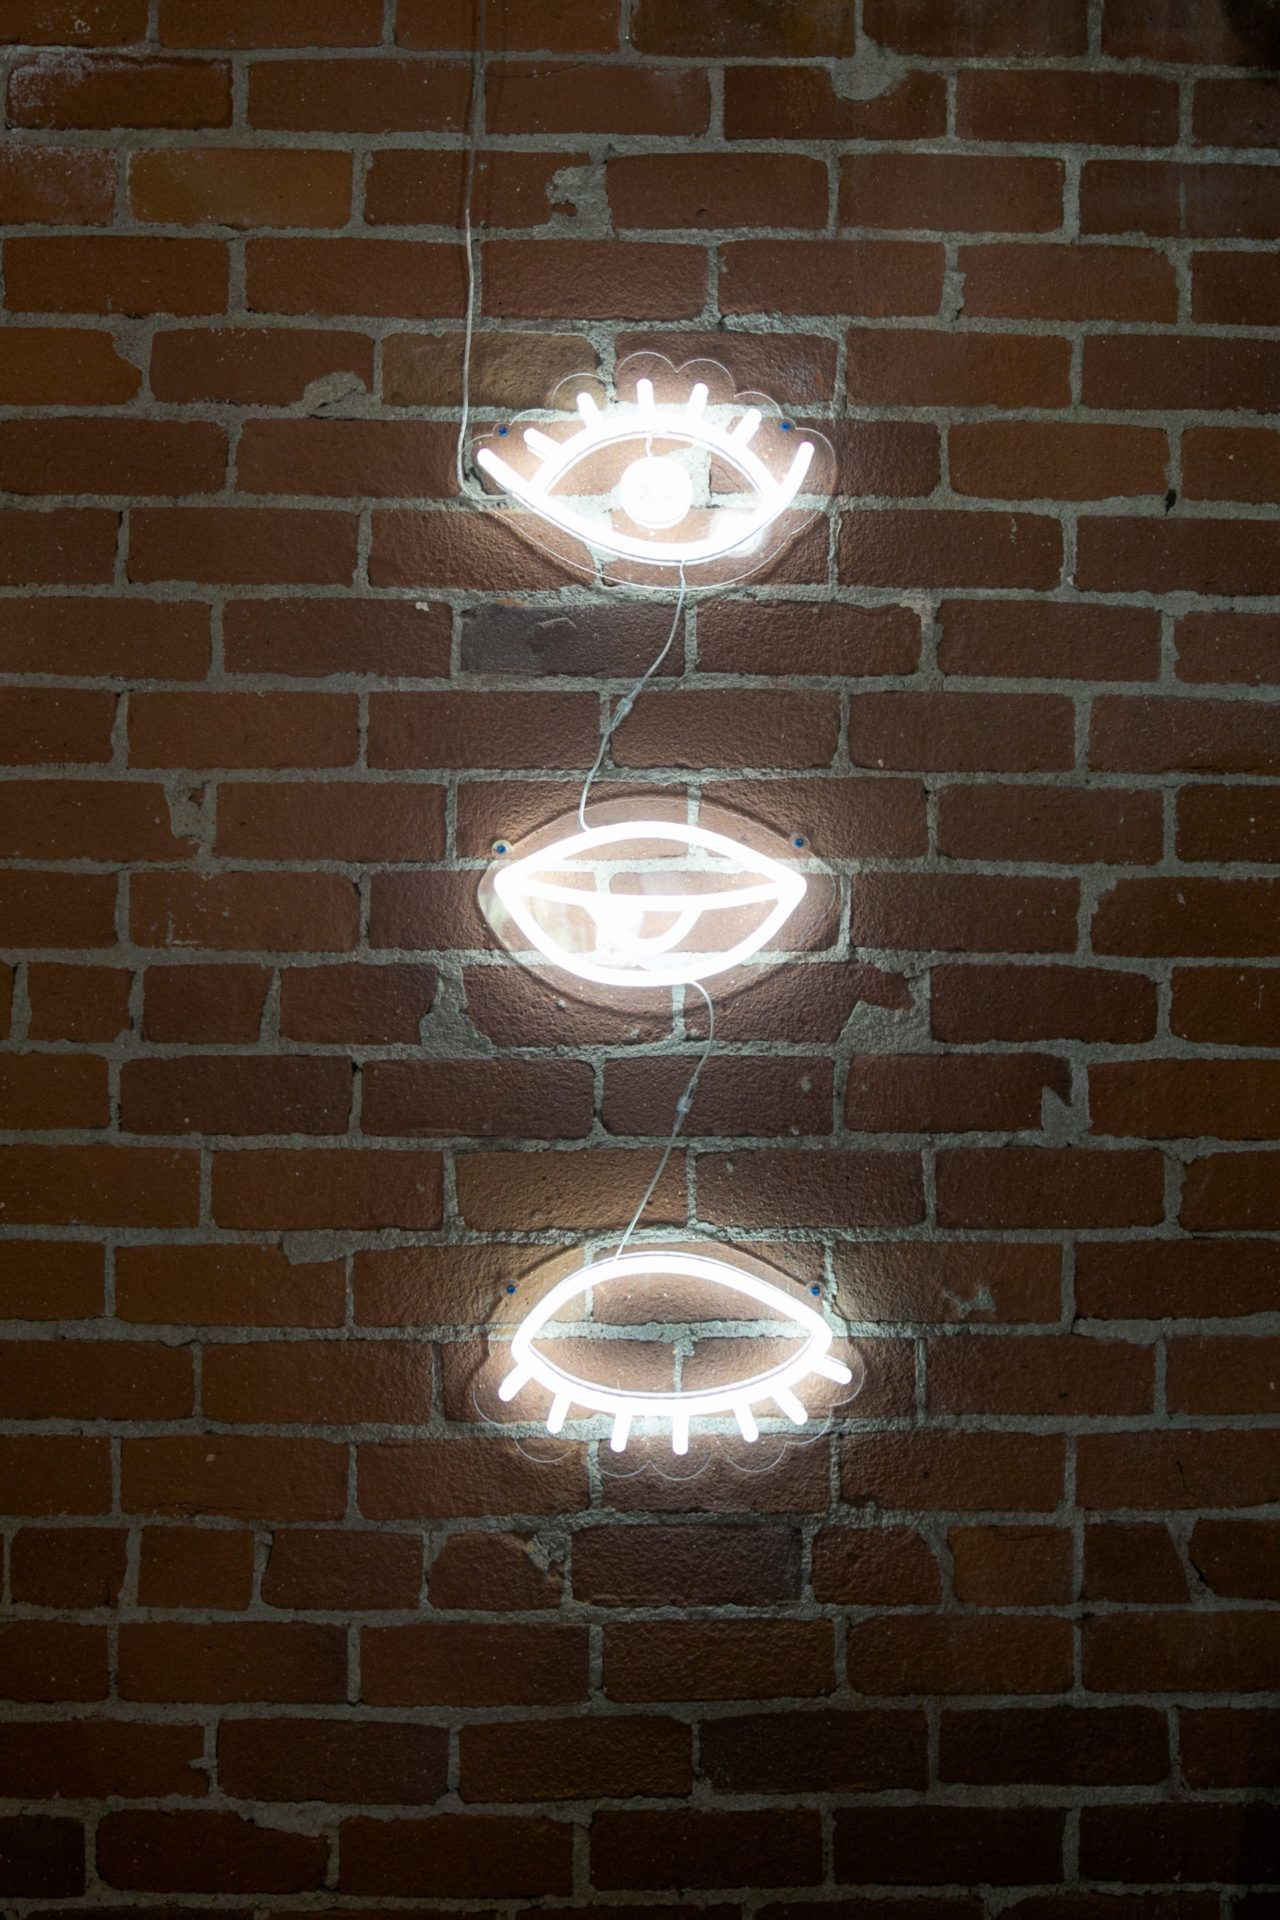 Eye see this amazing LED neon sign